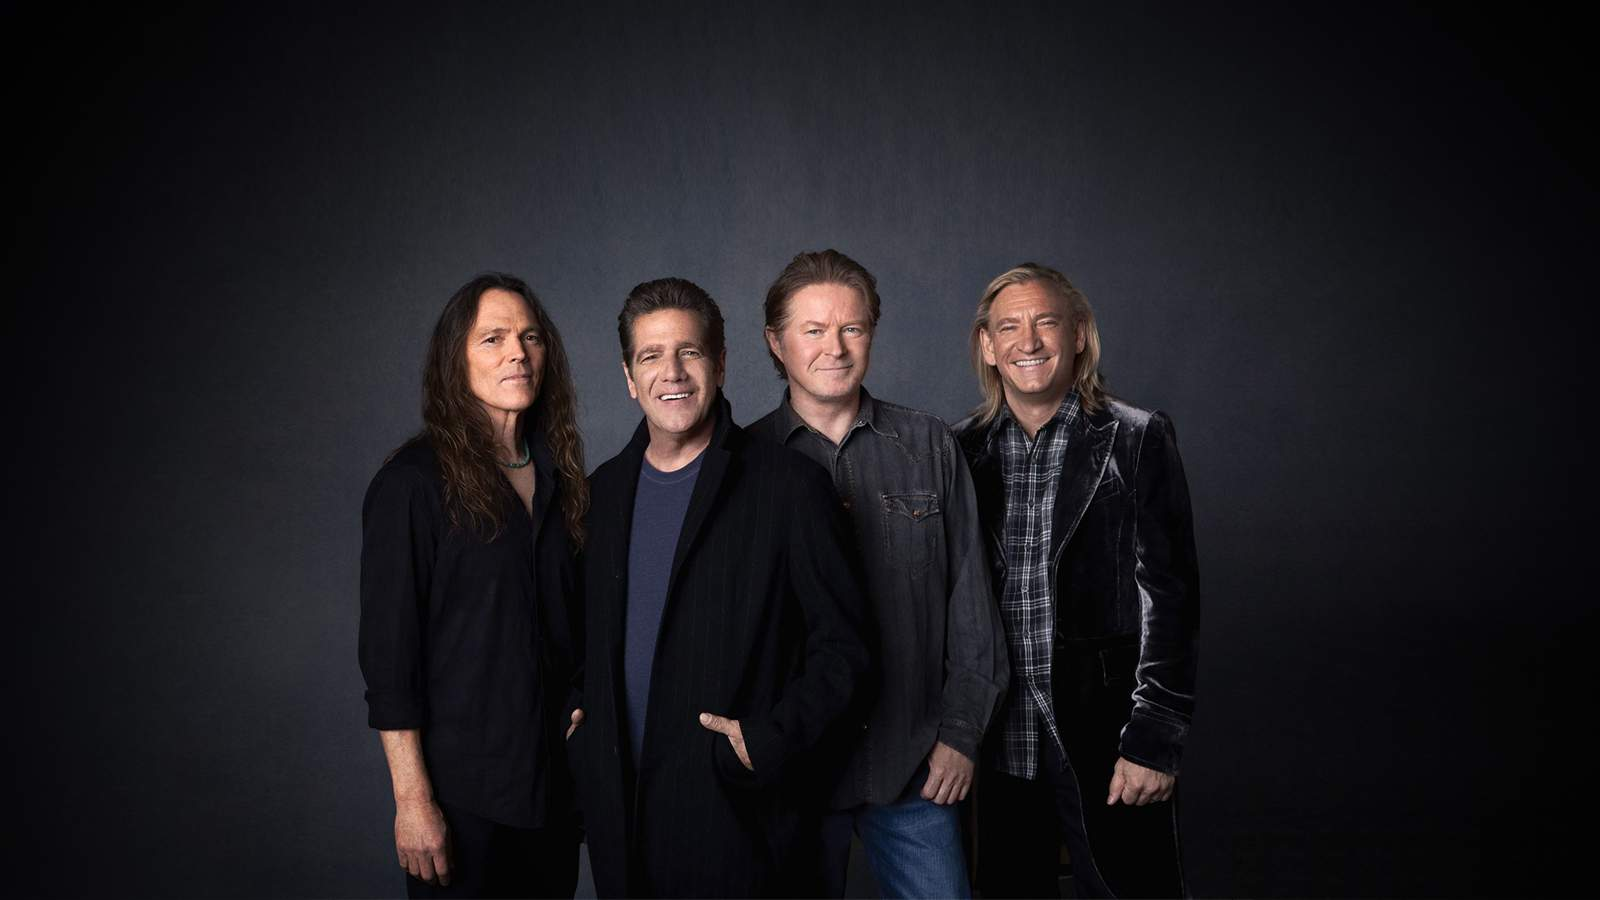 The Eagles (Rescheduled from 3/26/2020, 9/18/2020)